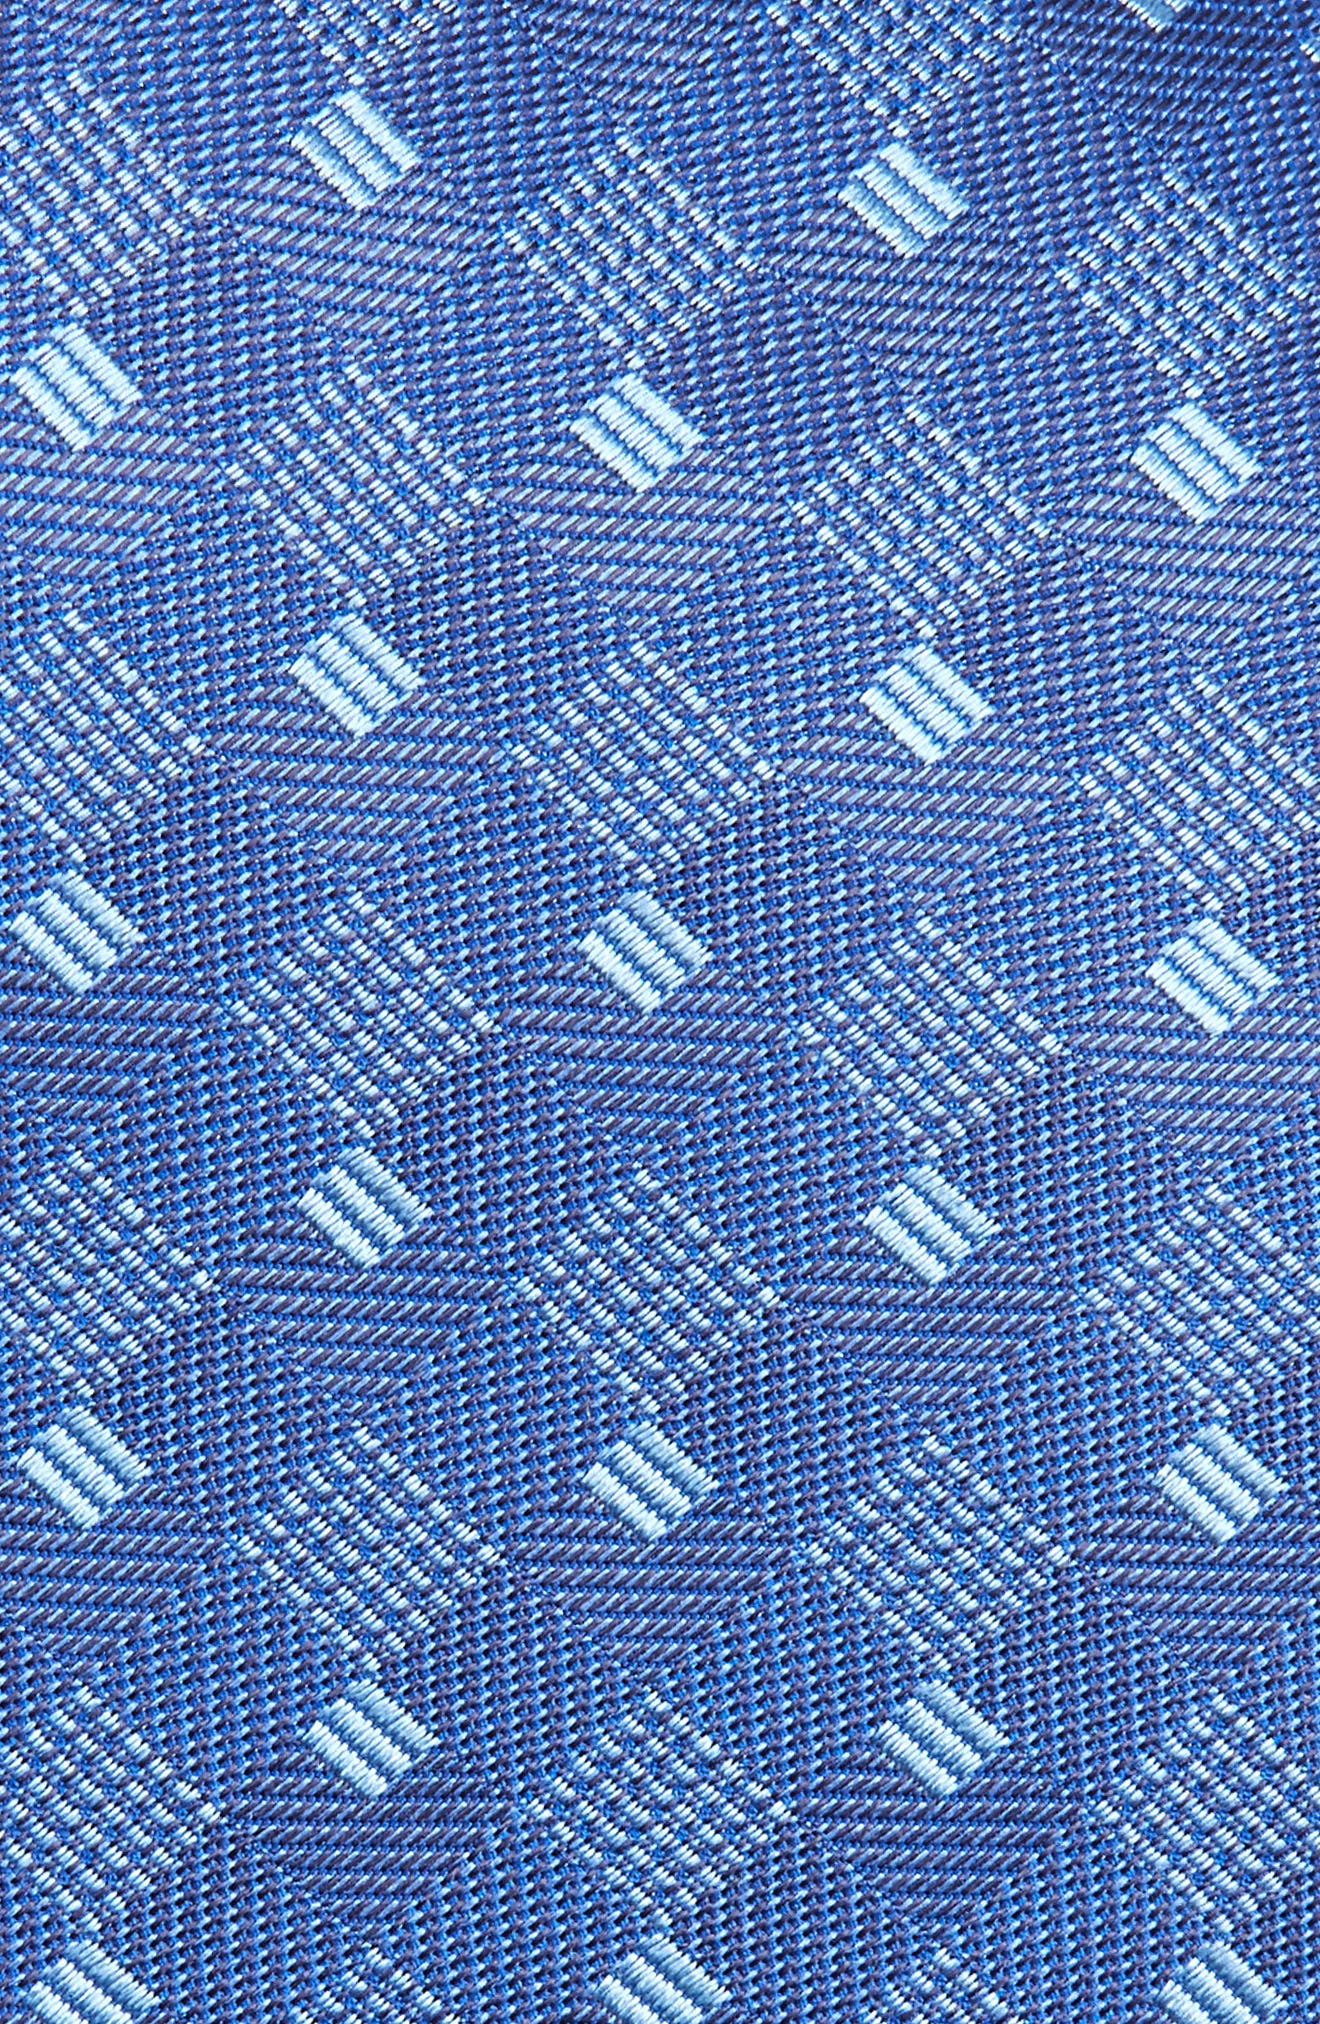 Geometric Silk Tie,                             Alternate thumbnail 2, color,                             423